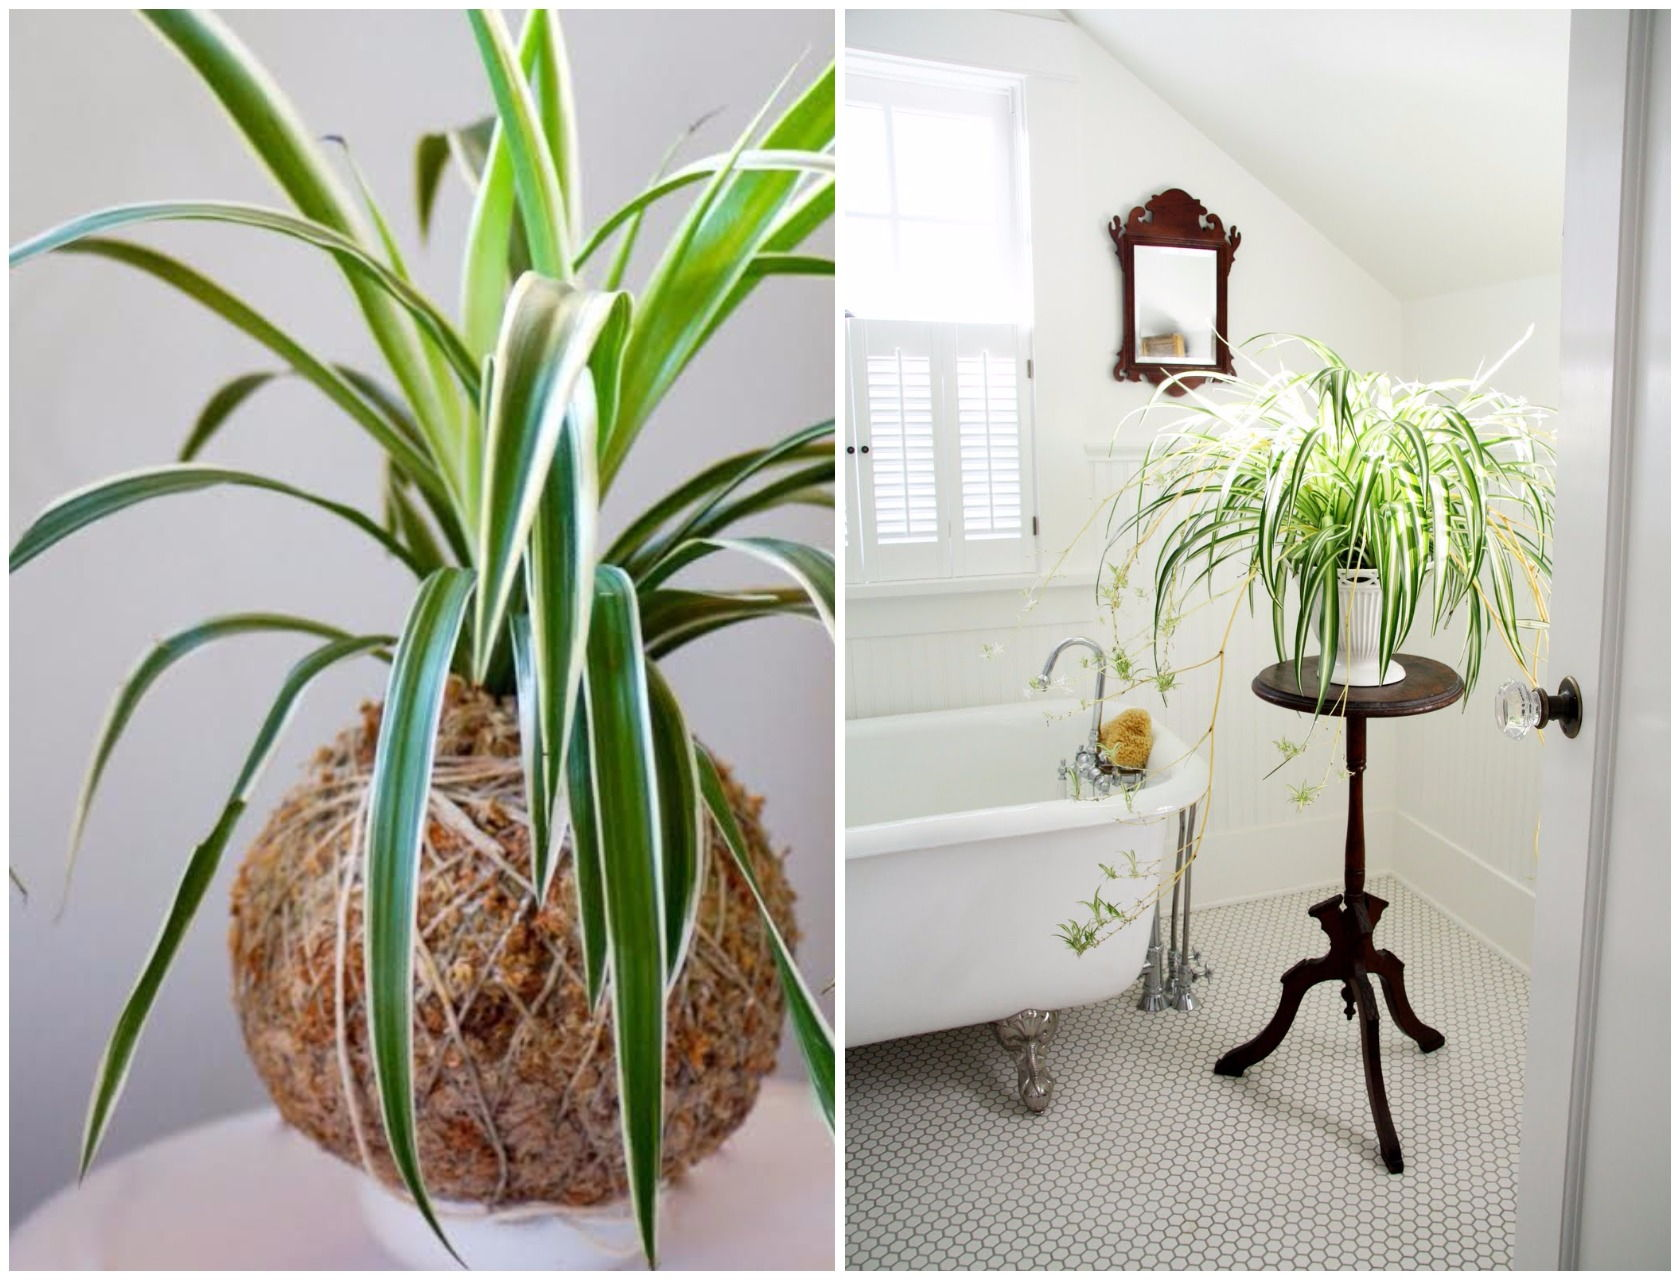 Top Of Cupboard Decor >> 9 Indoor Plants You Can't Kill (So Easily) | Atap.co